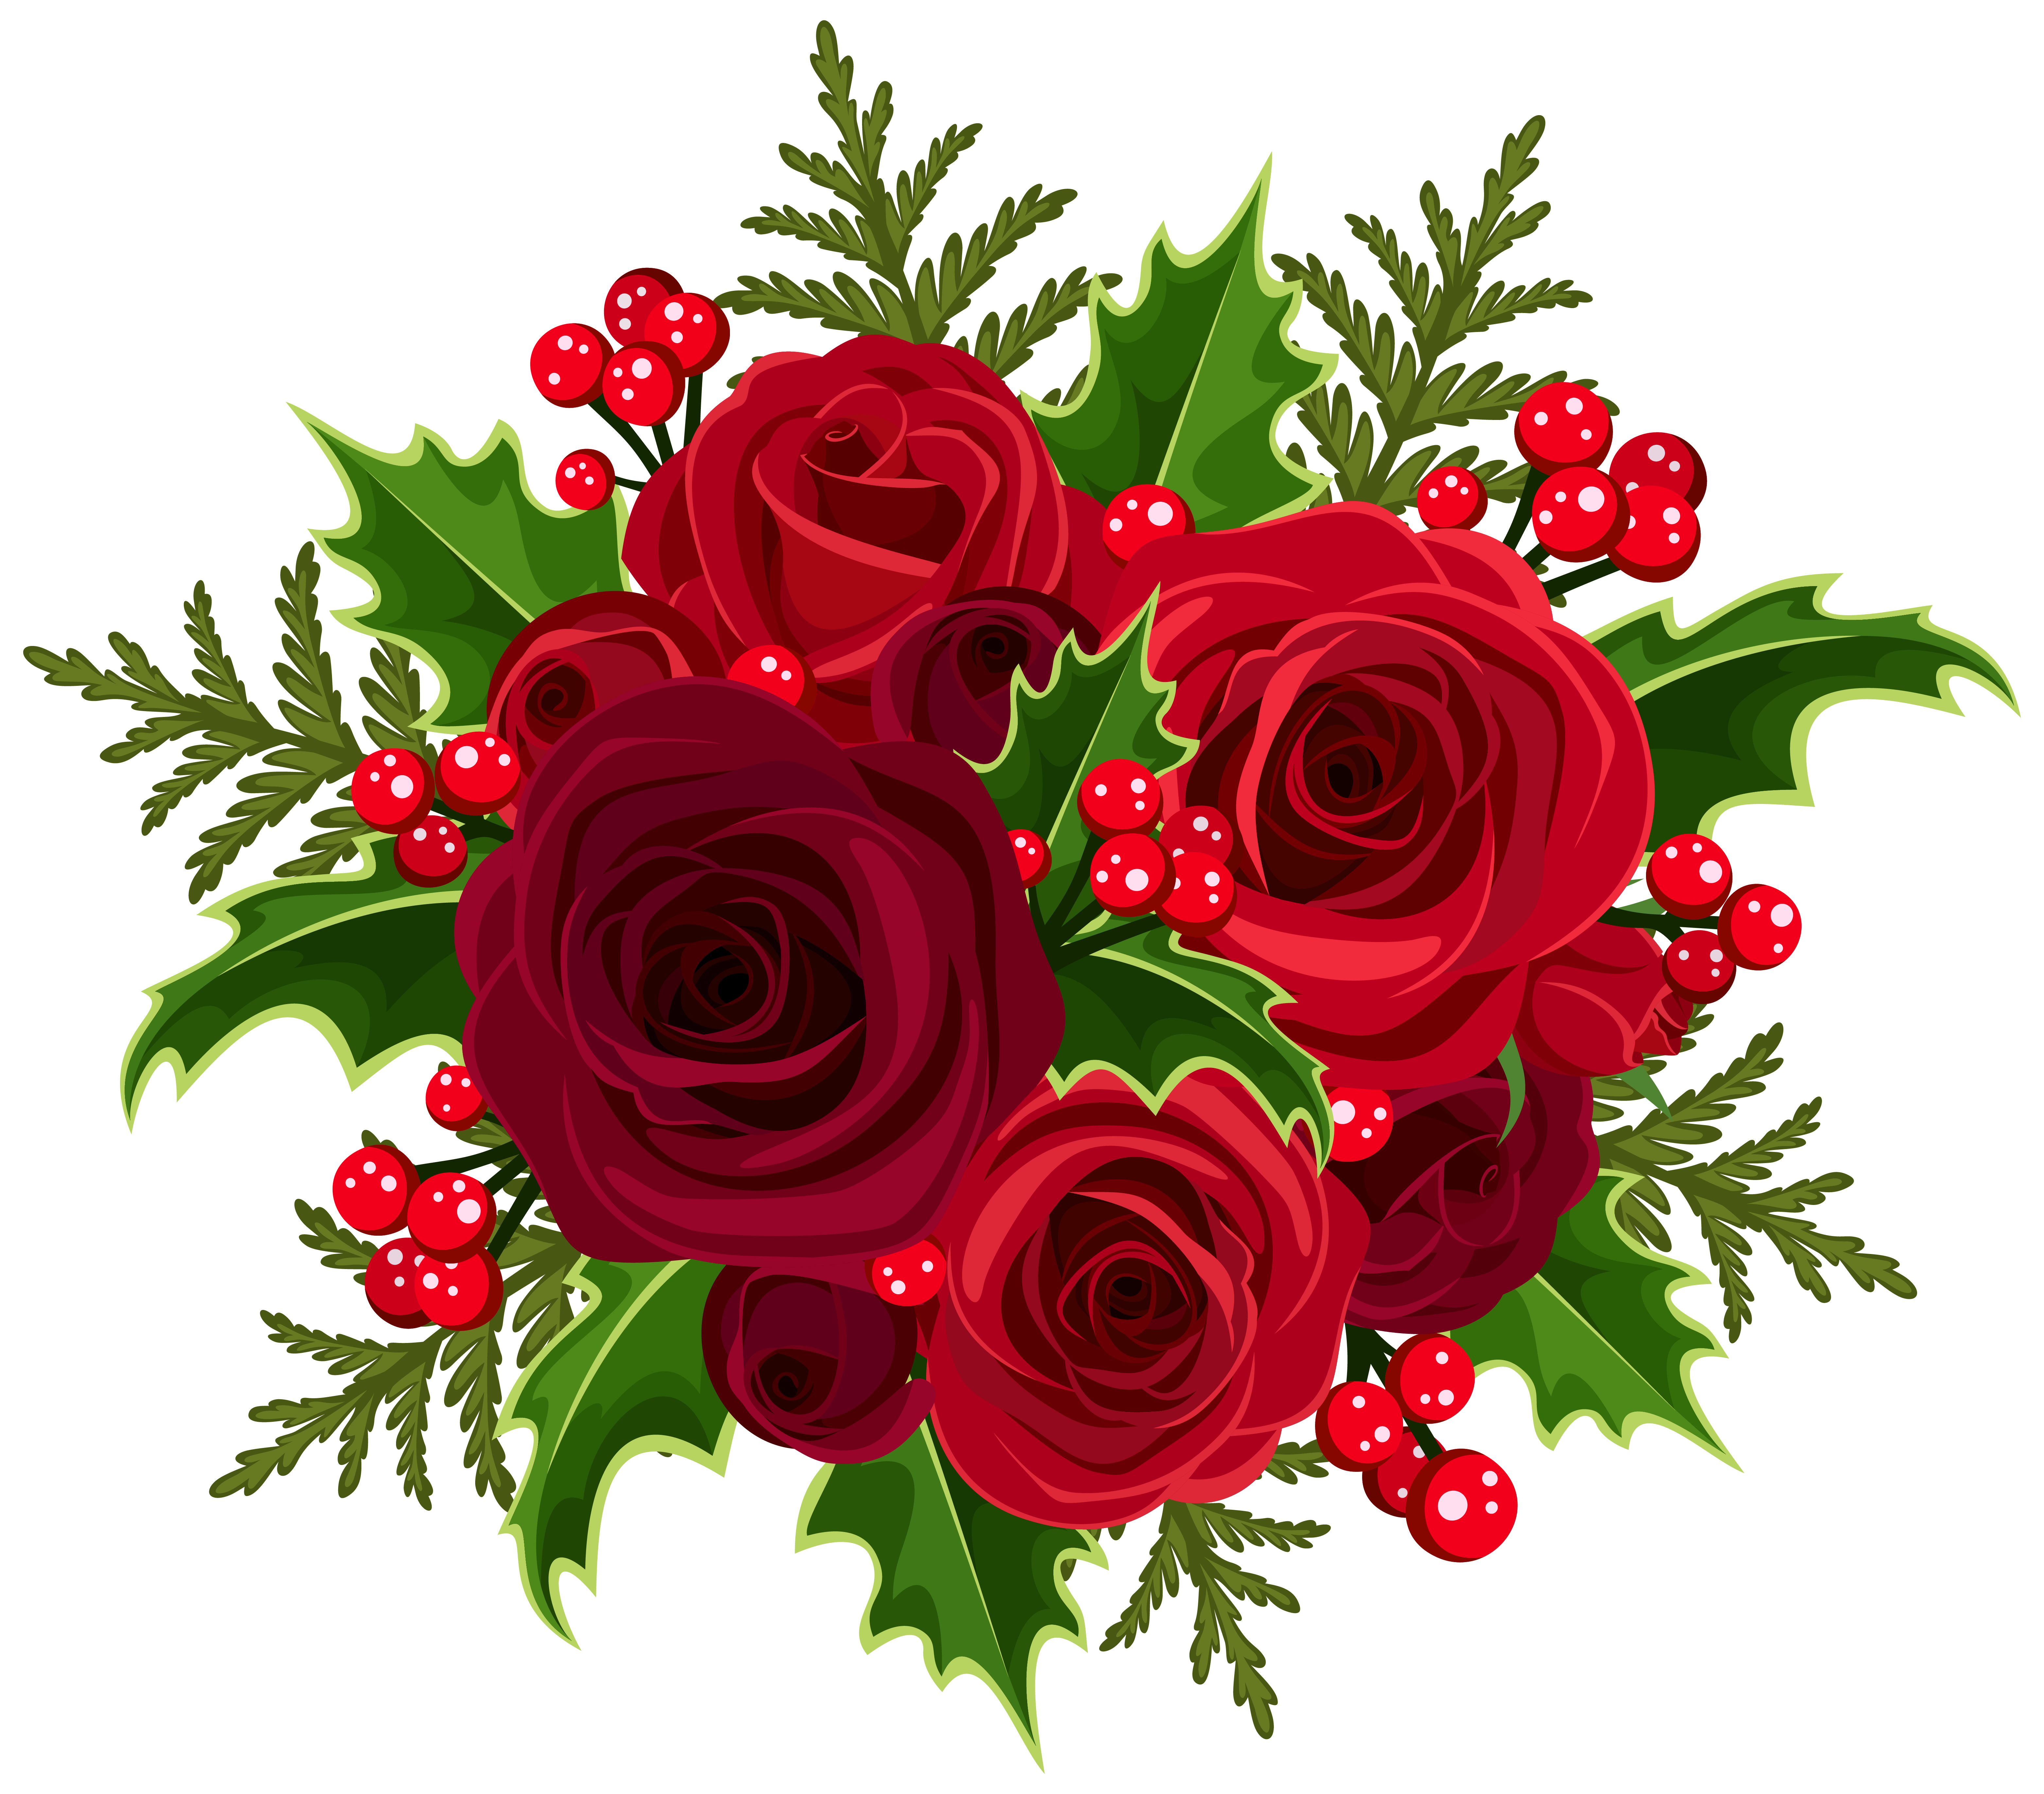 Christmas Rose Decoration PNG Clip Art Image.